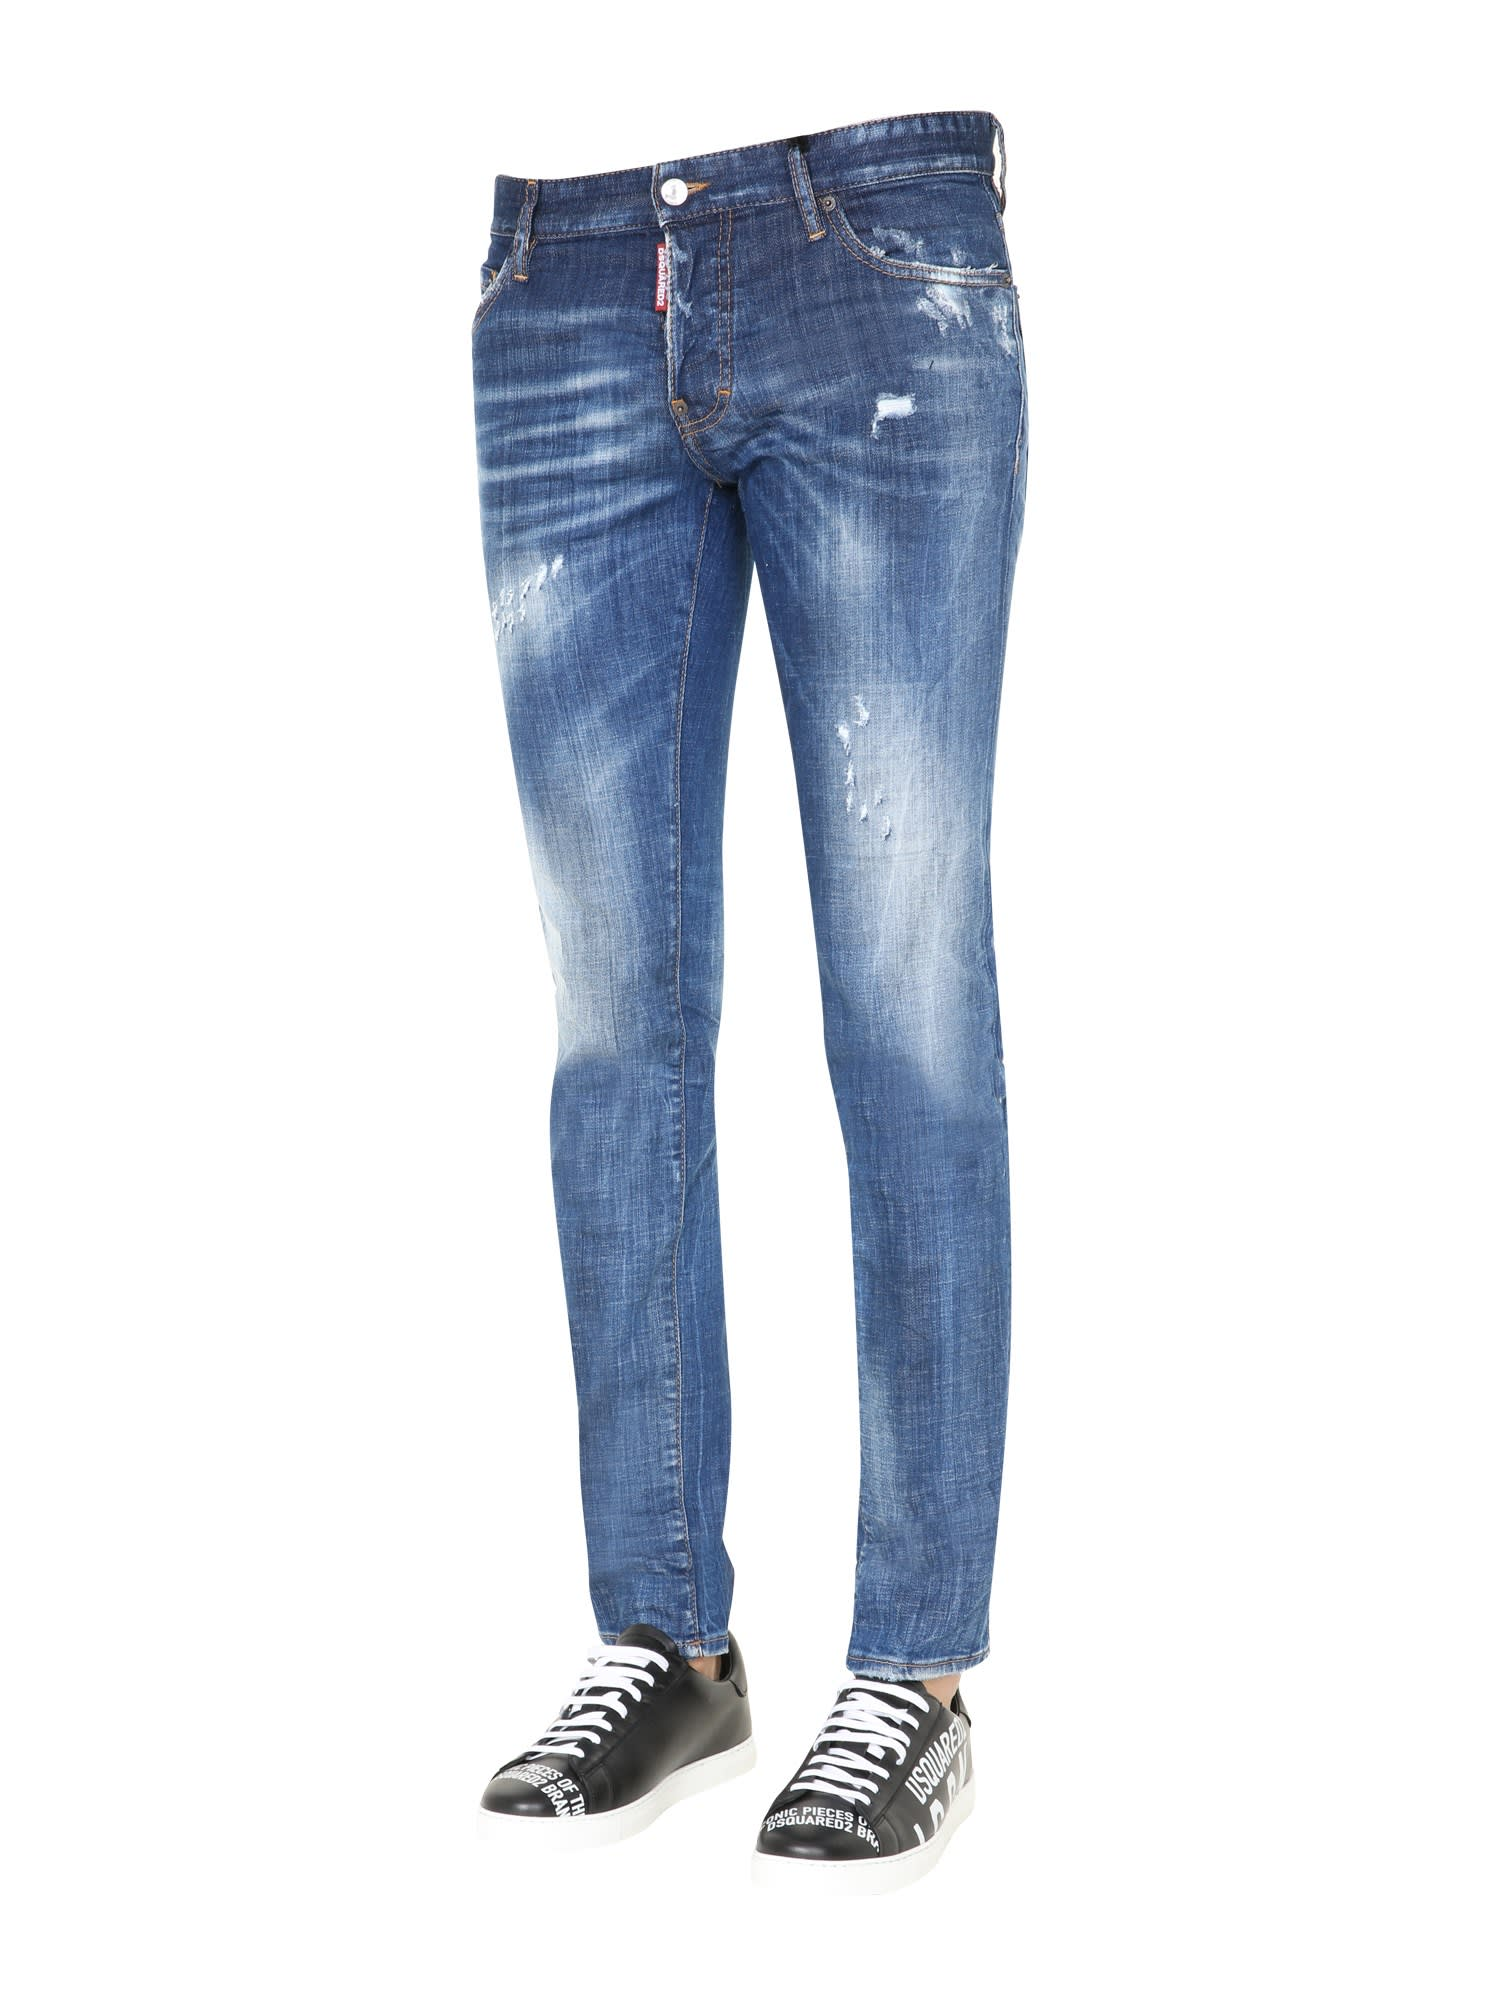 High Quality Slim Fit Jeans - Top